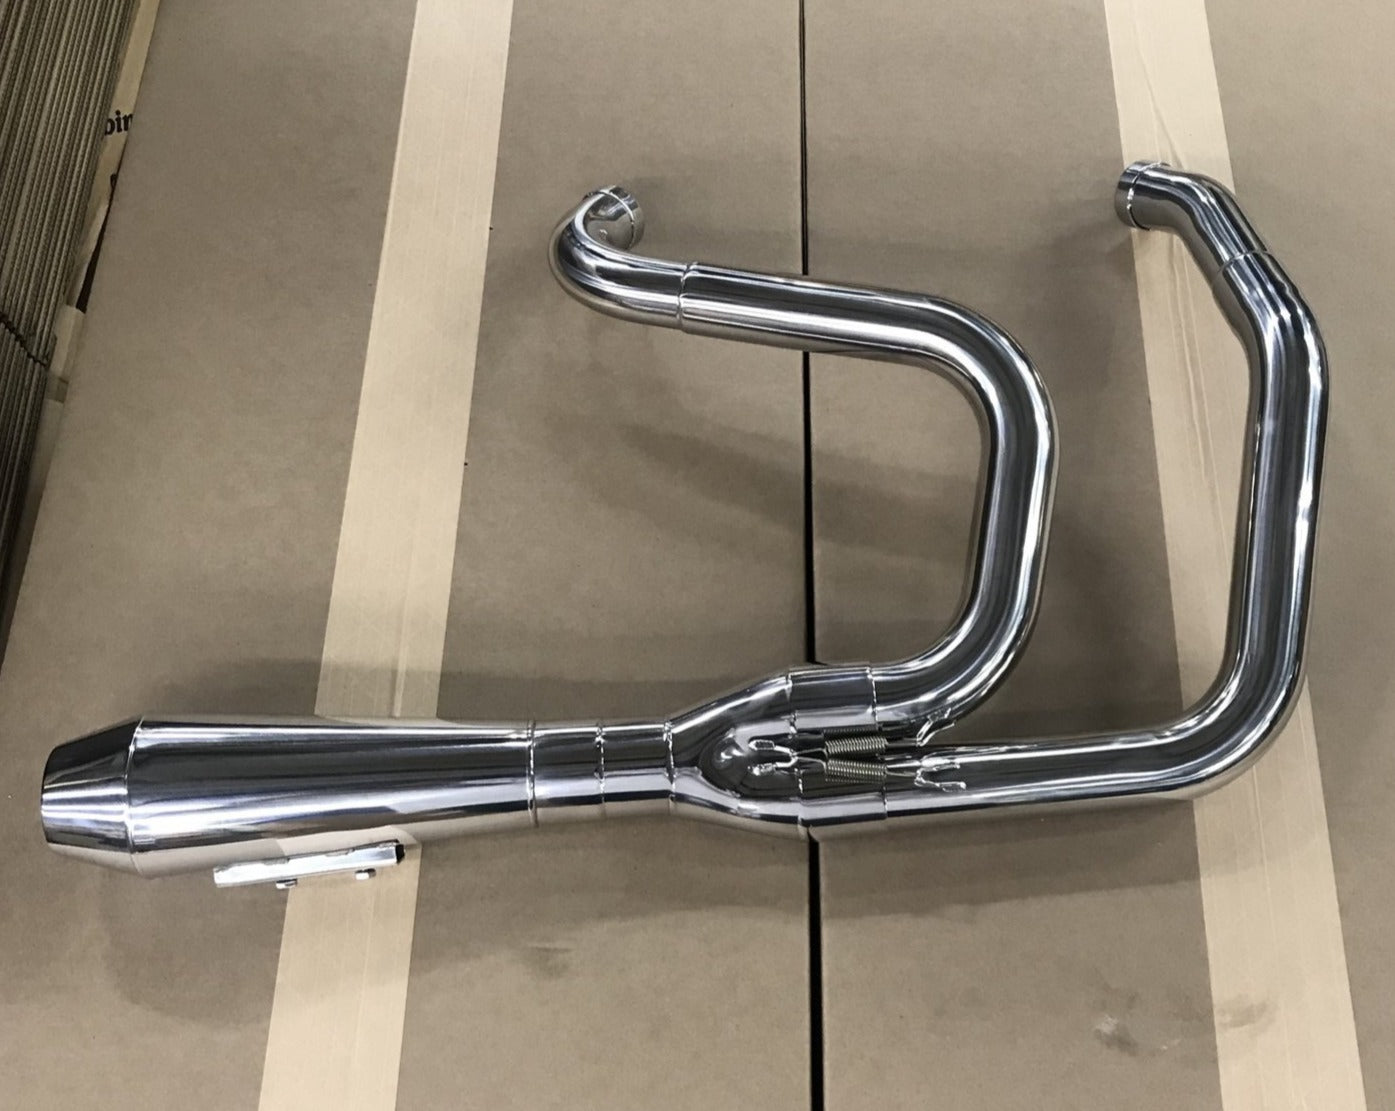 Zero Hour 2-1 Stainless Exhaust System for 99-03 & 04-20 Sportster